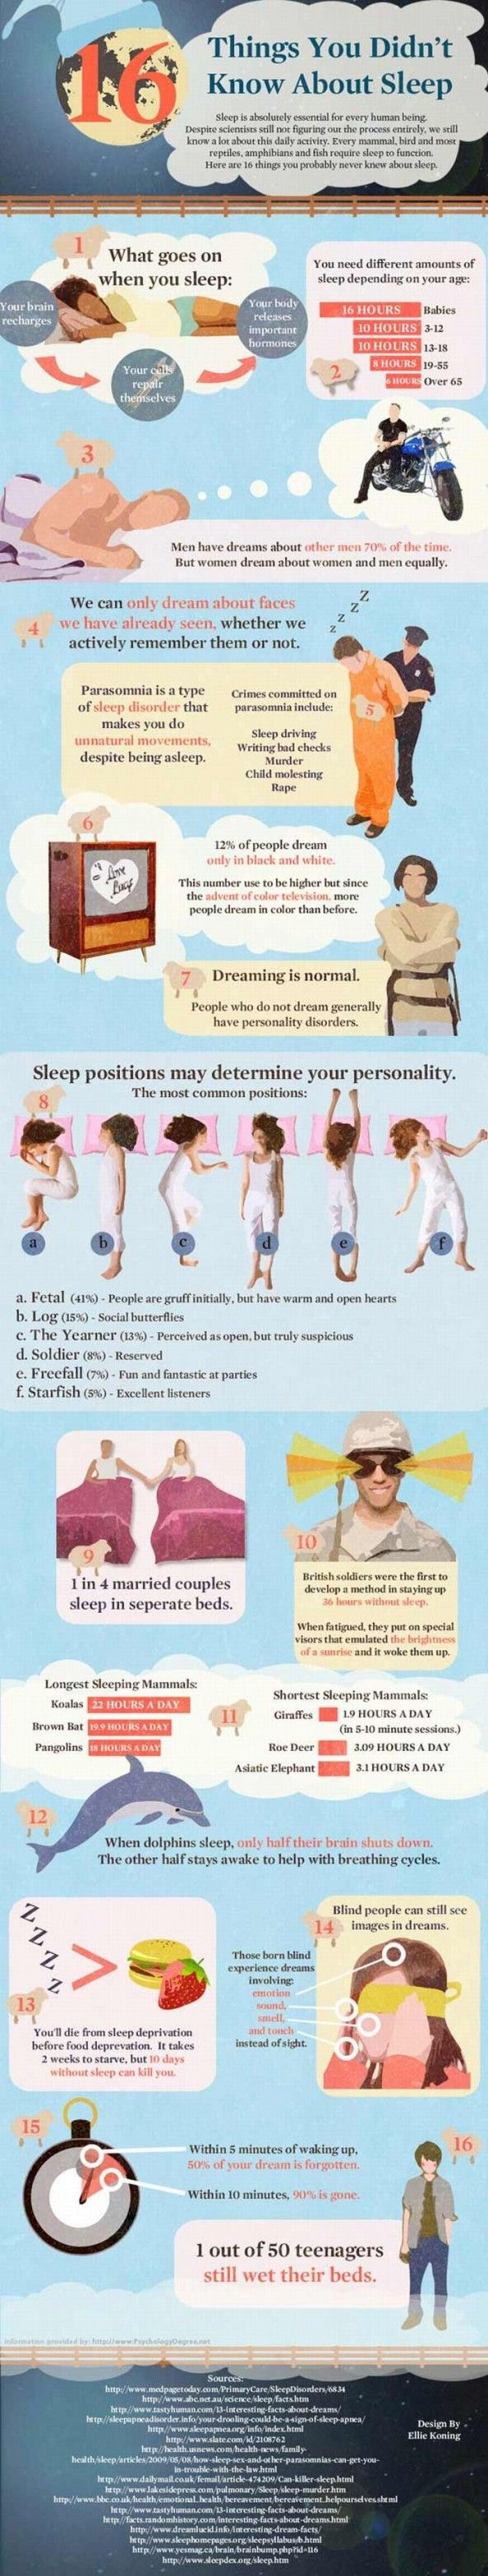 16 Things You Didn't Know About Sleep [Infographic]